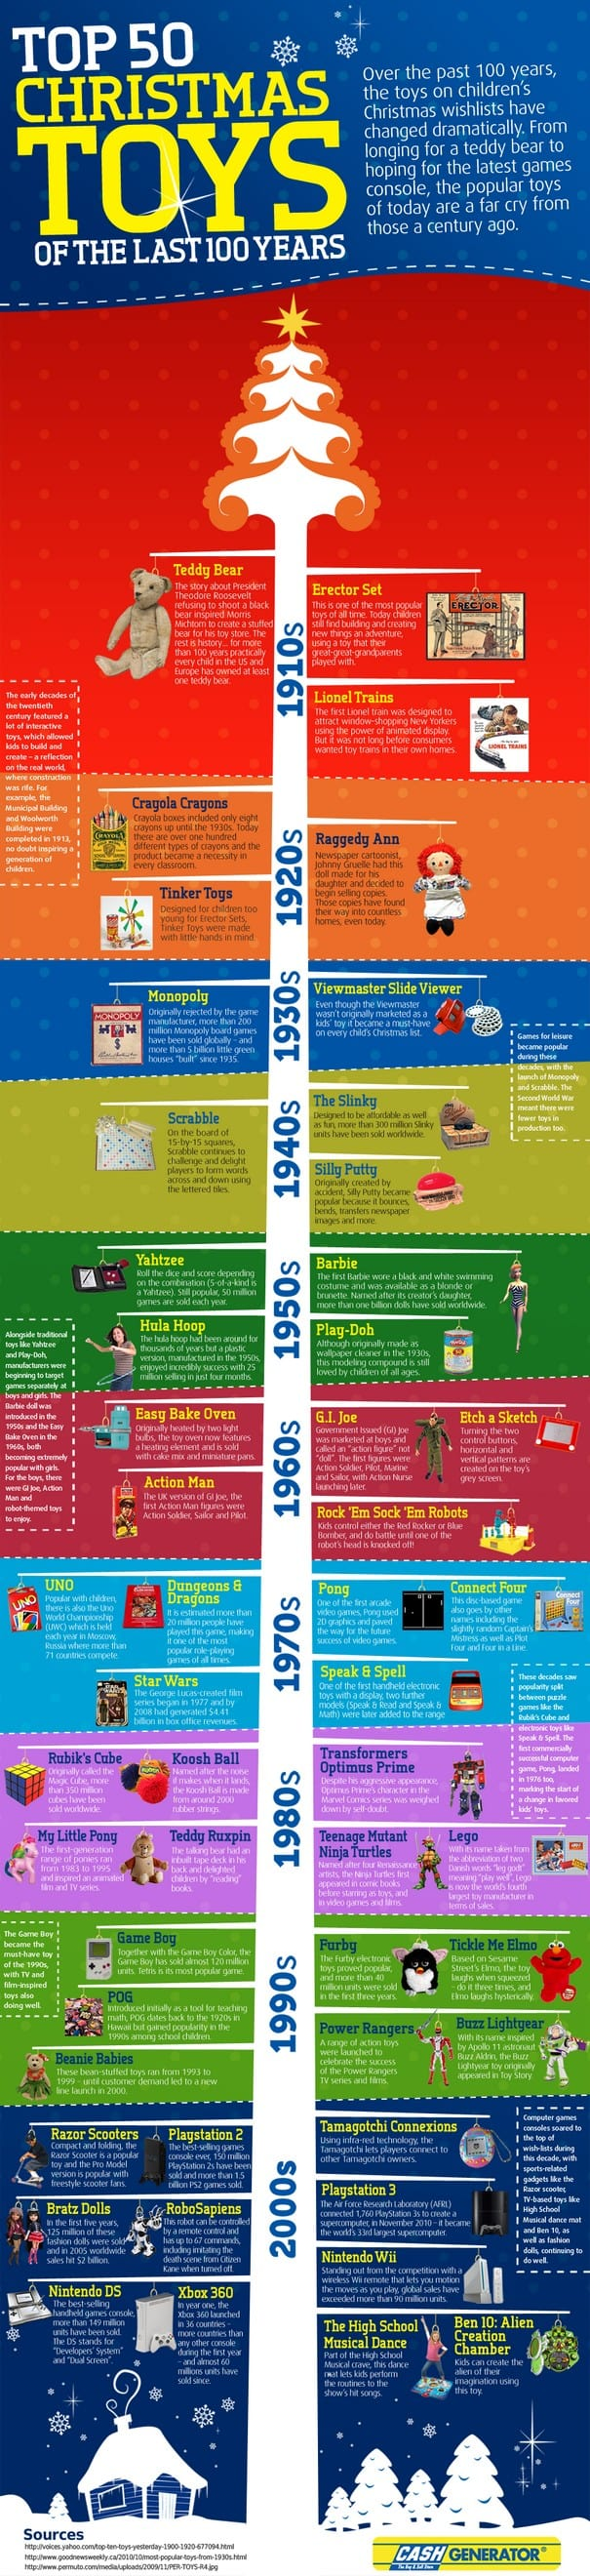 Top 50 toys of the last 100 years Infographic